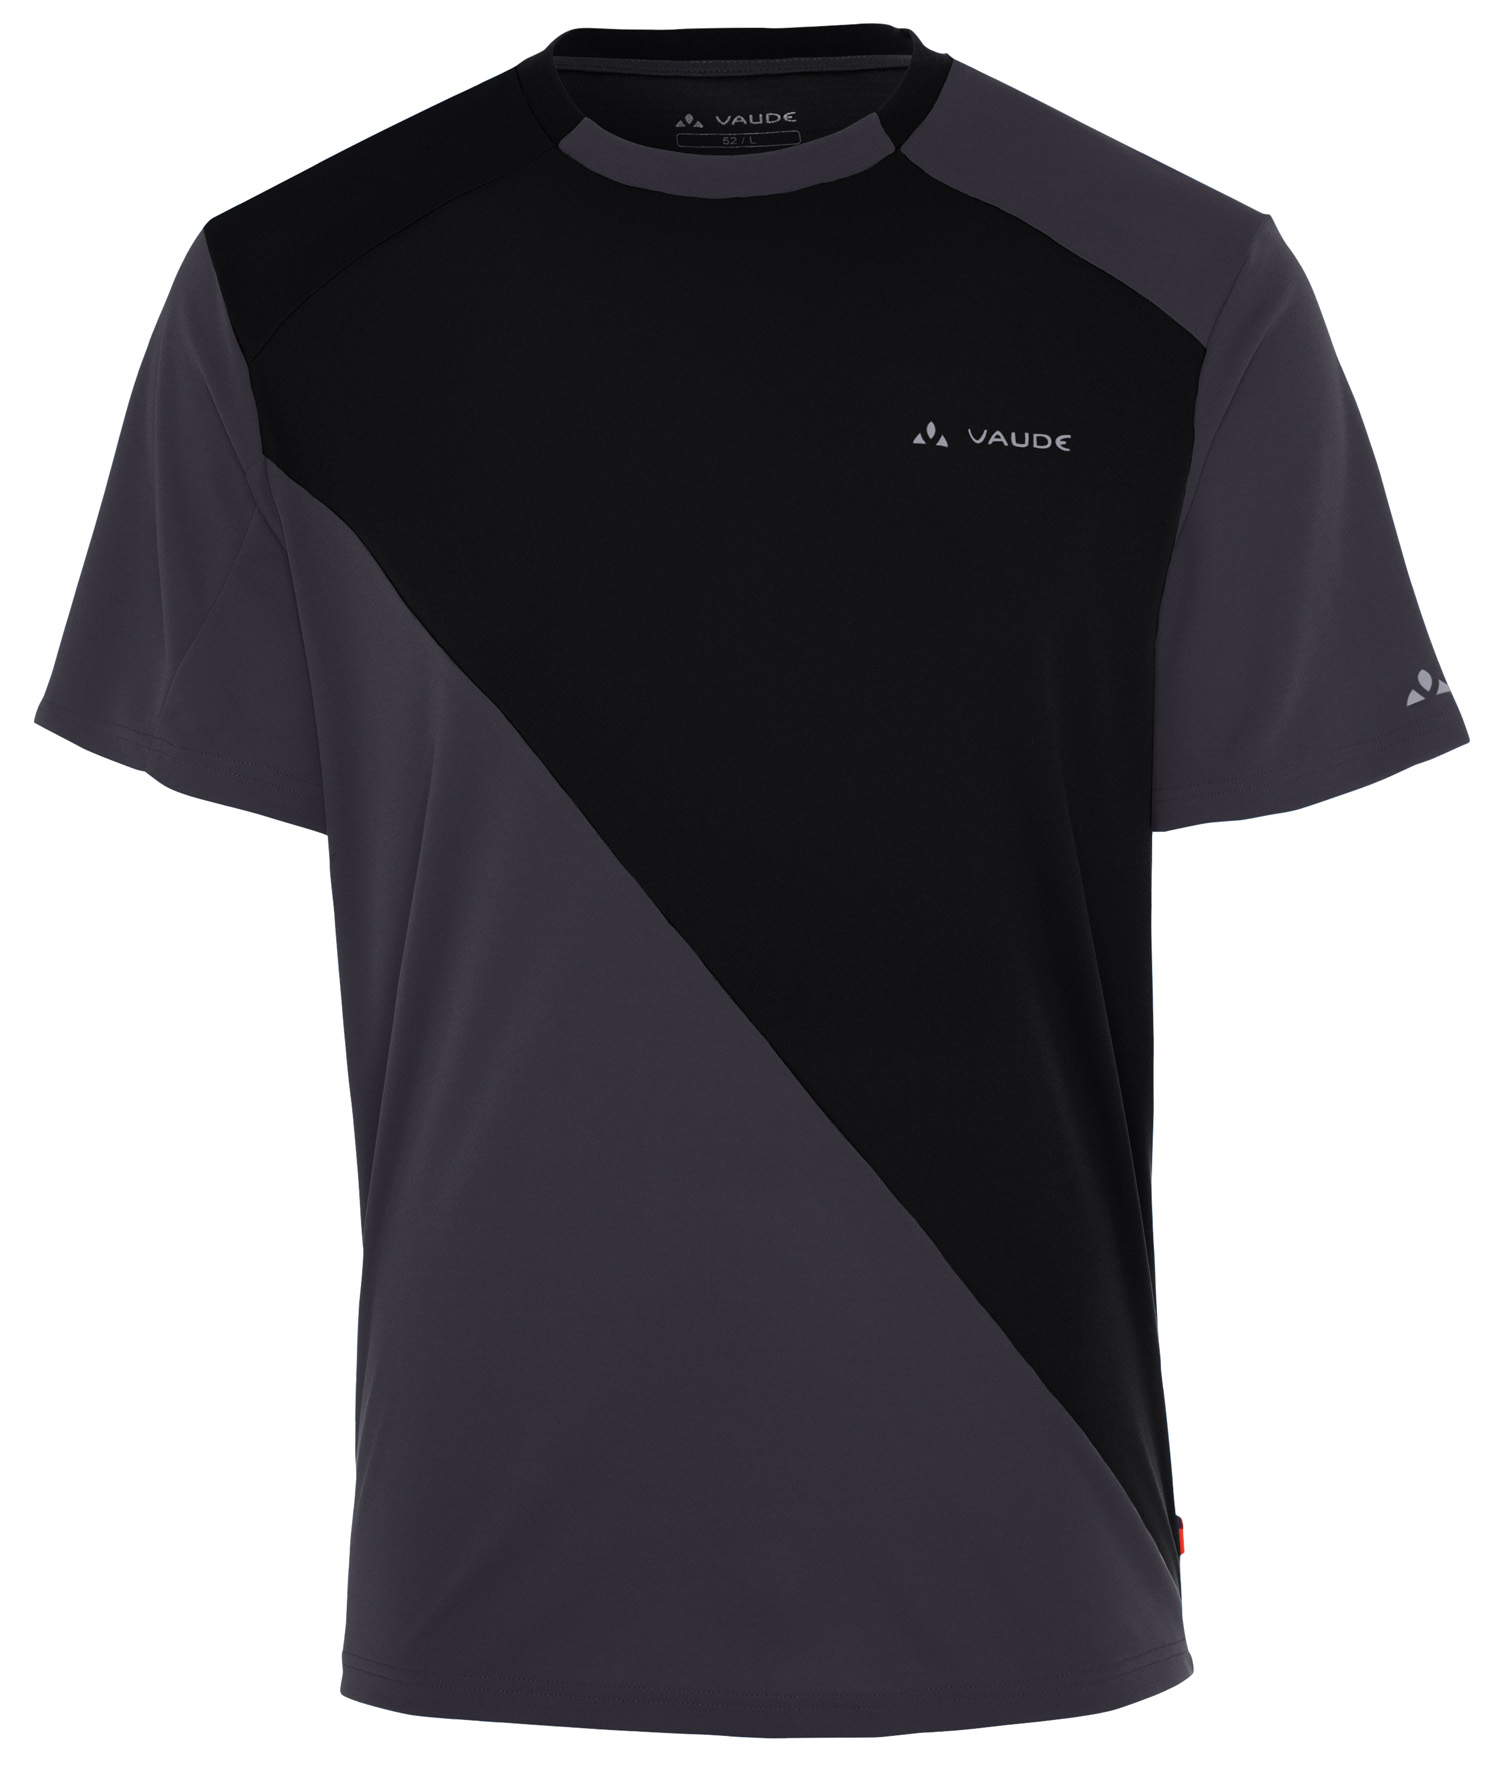 Men´s Moab Shirt black Größe S - schneider-sports